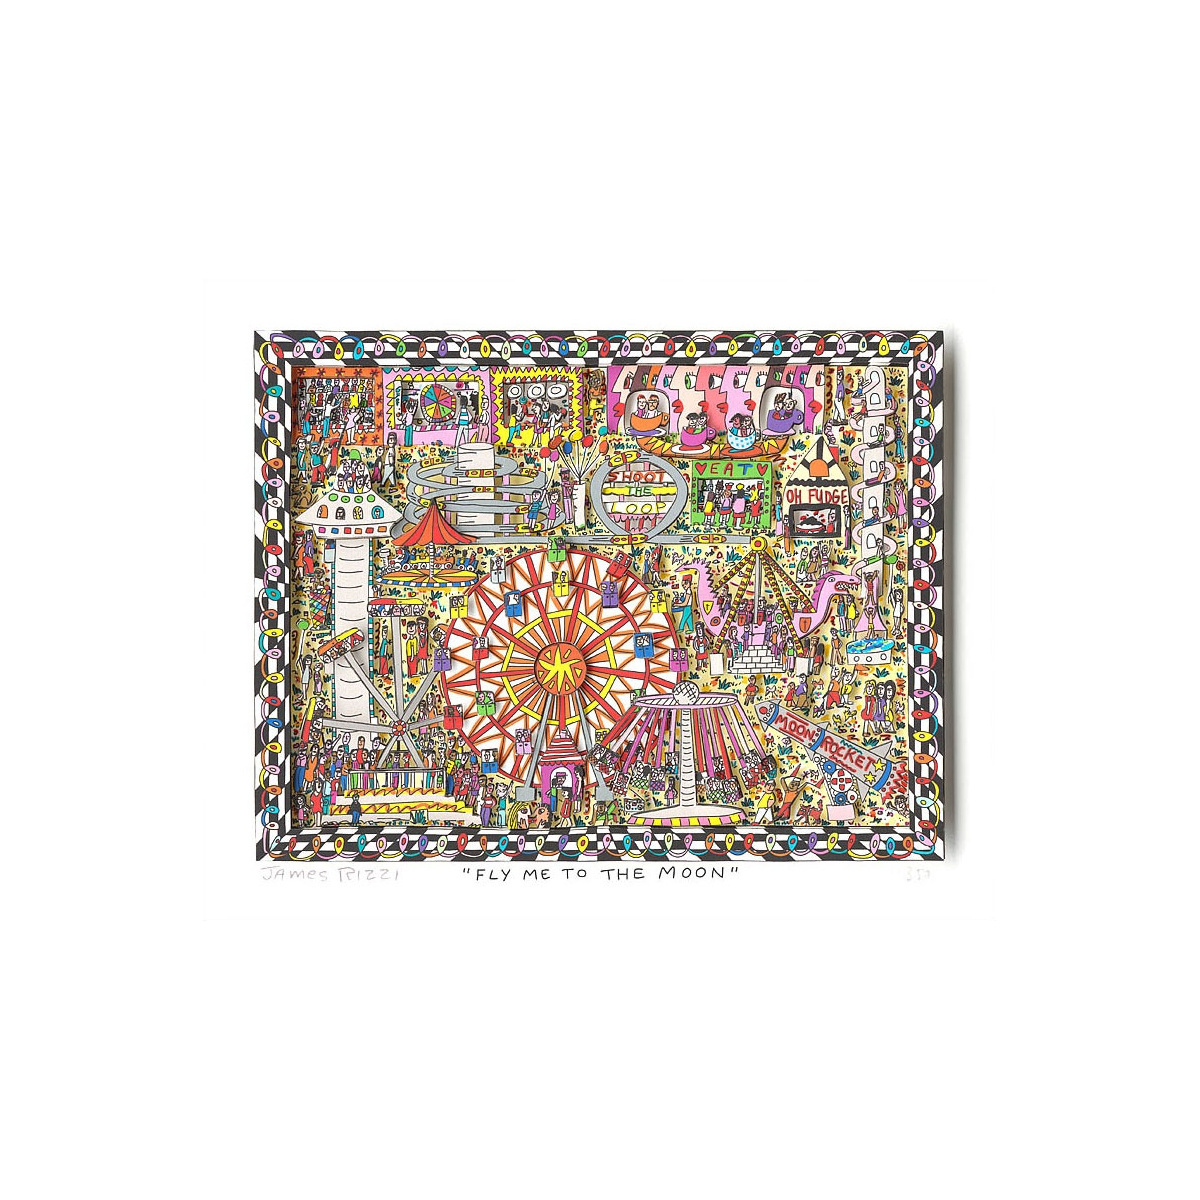 Fly me to the moon von James Rizzi